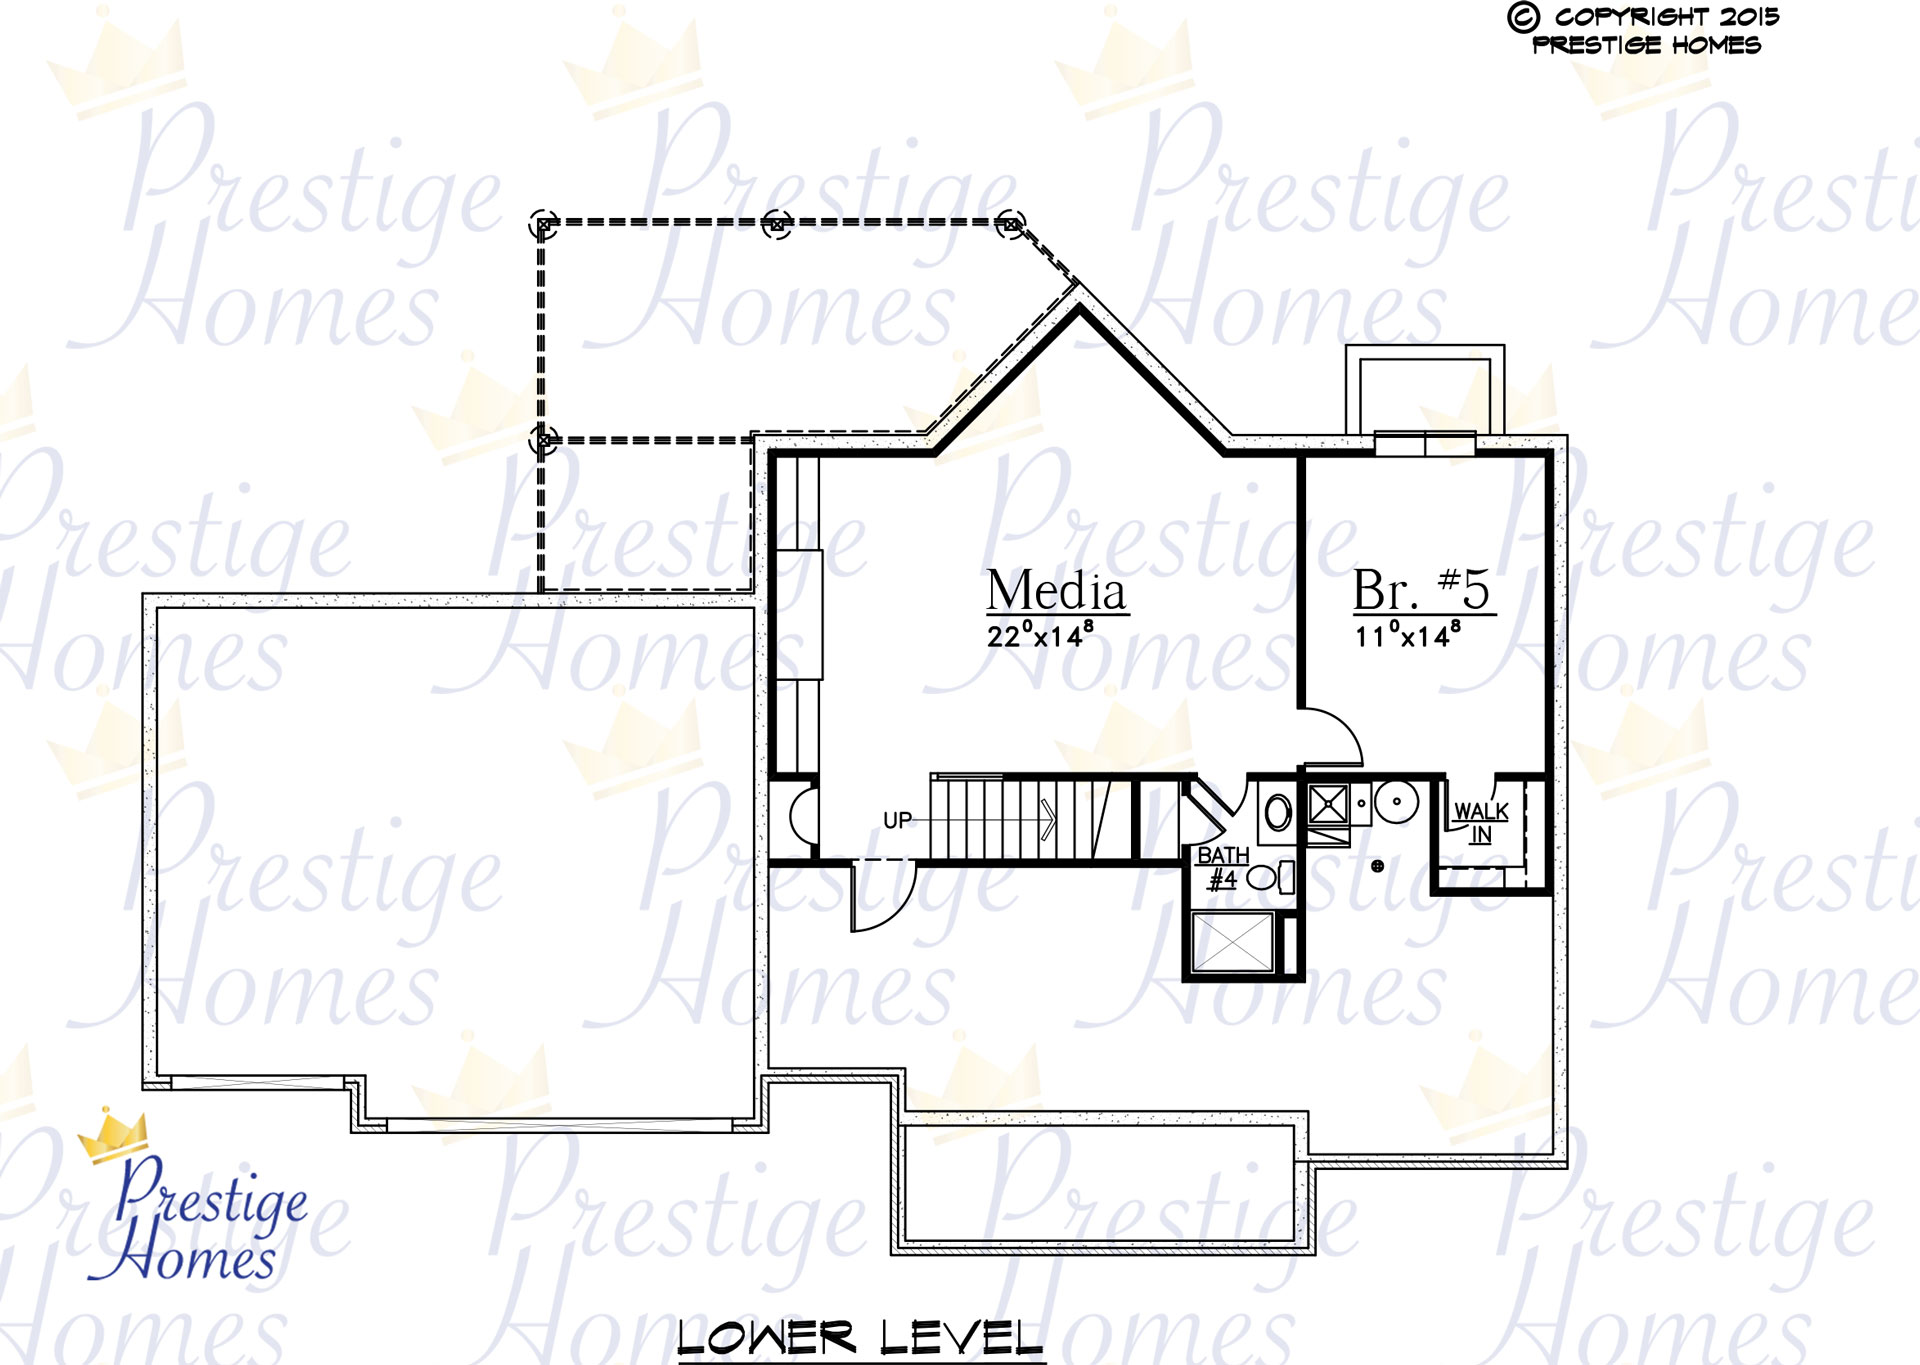 Prestige Homes - Floor Plan - Mitchel - Original - Lower